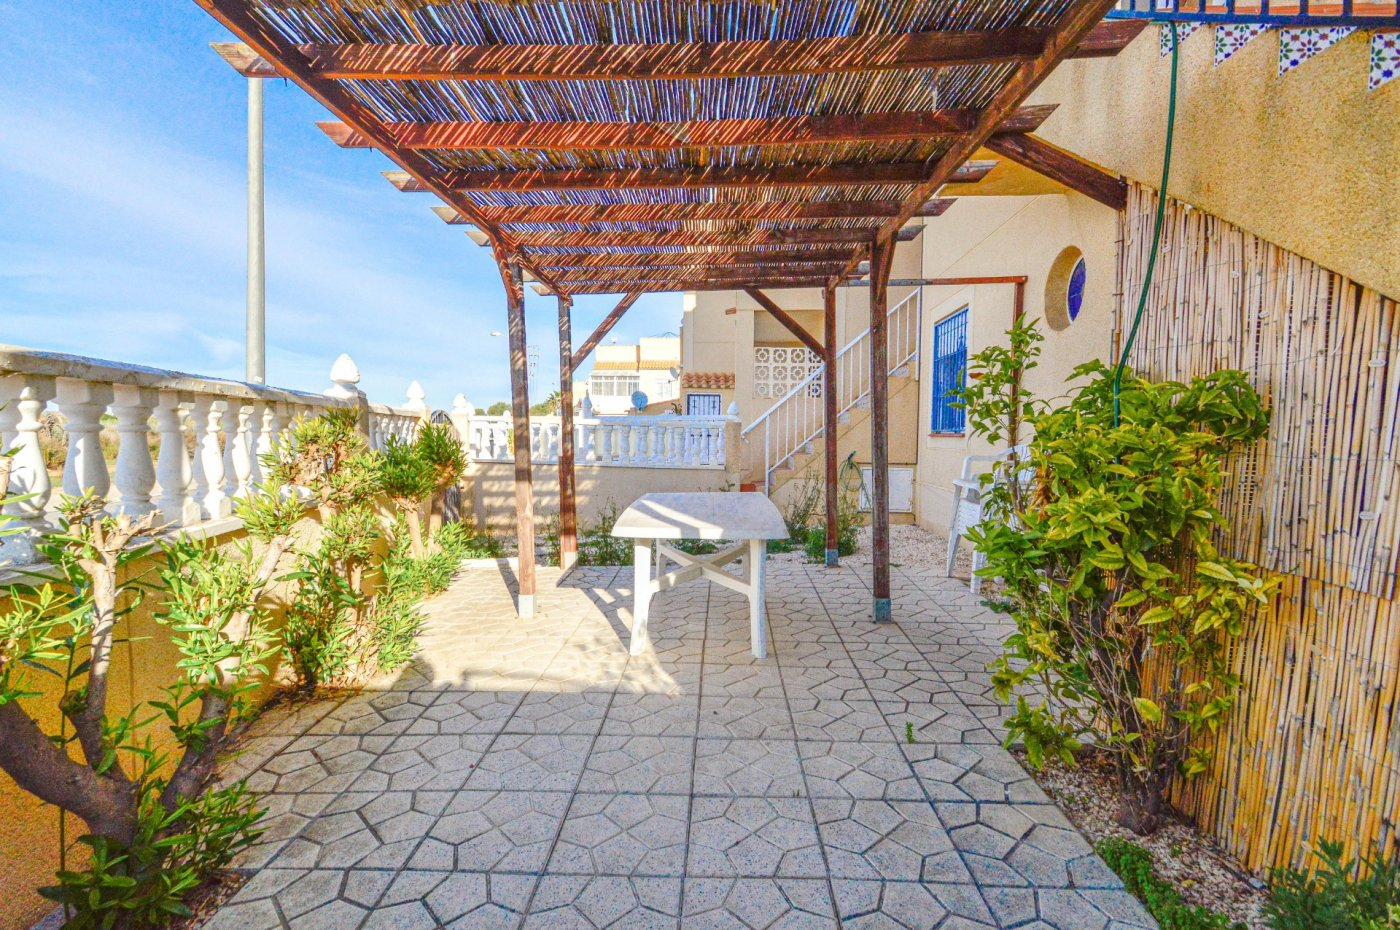 3 Bedrooms Top Floor Bungalow with Garden, Parking and Solarium For Sale in Torrevieja